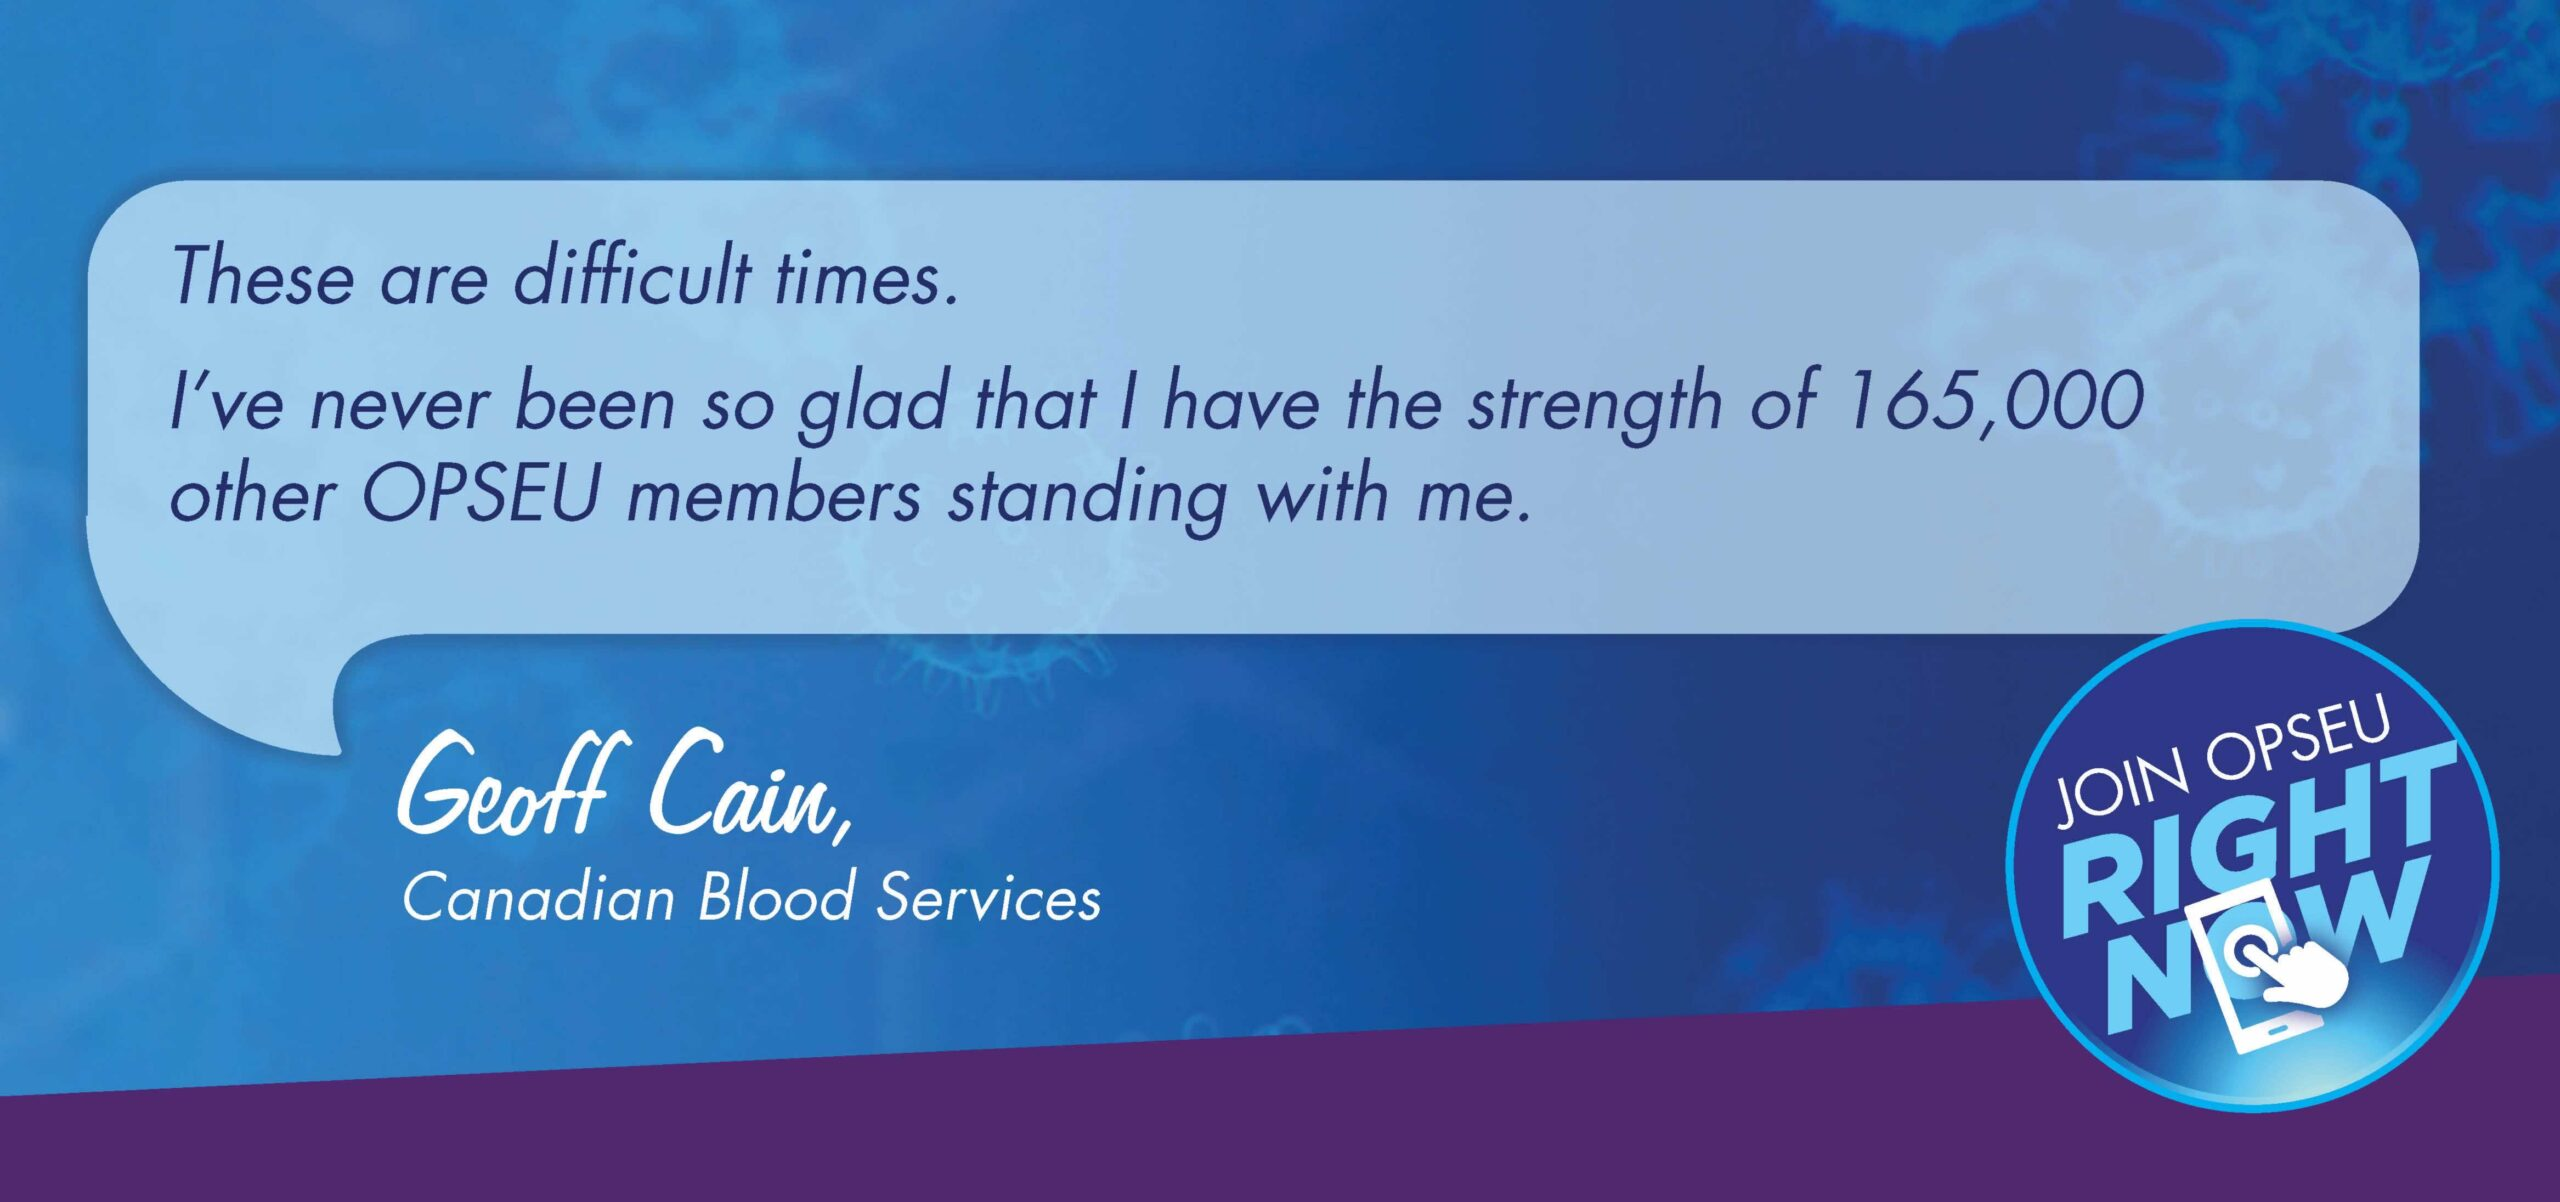 Lifelabs Testimonial: These are difficult times. I've never been so glad to have the strength of 165,000 other OPSEU members standing with me.